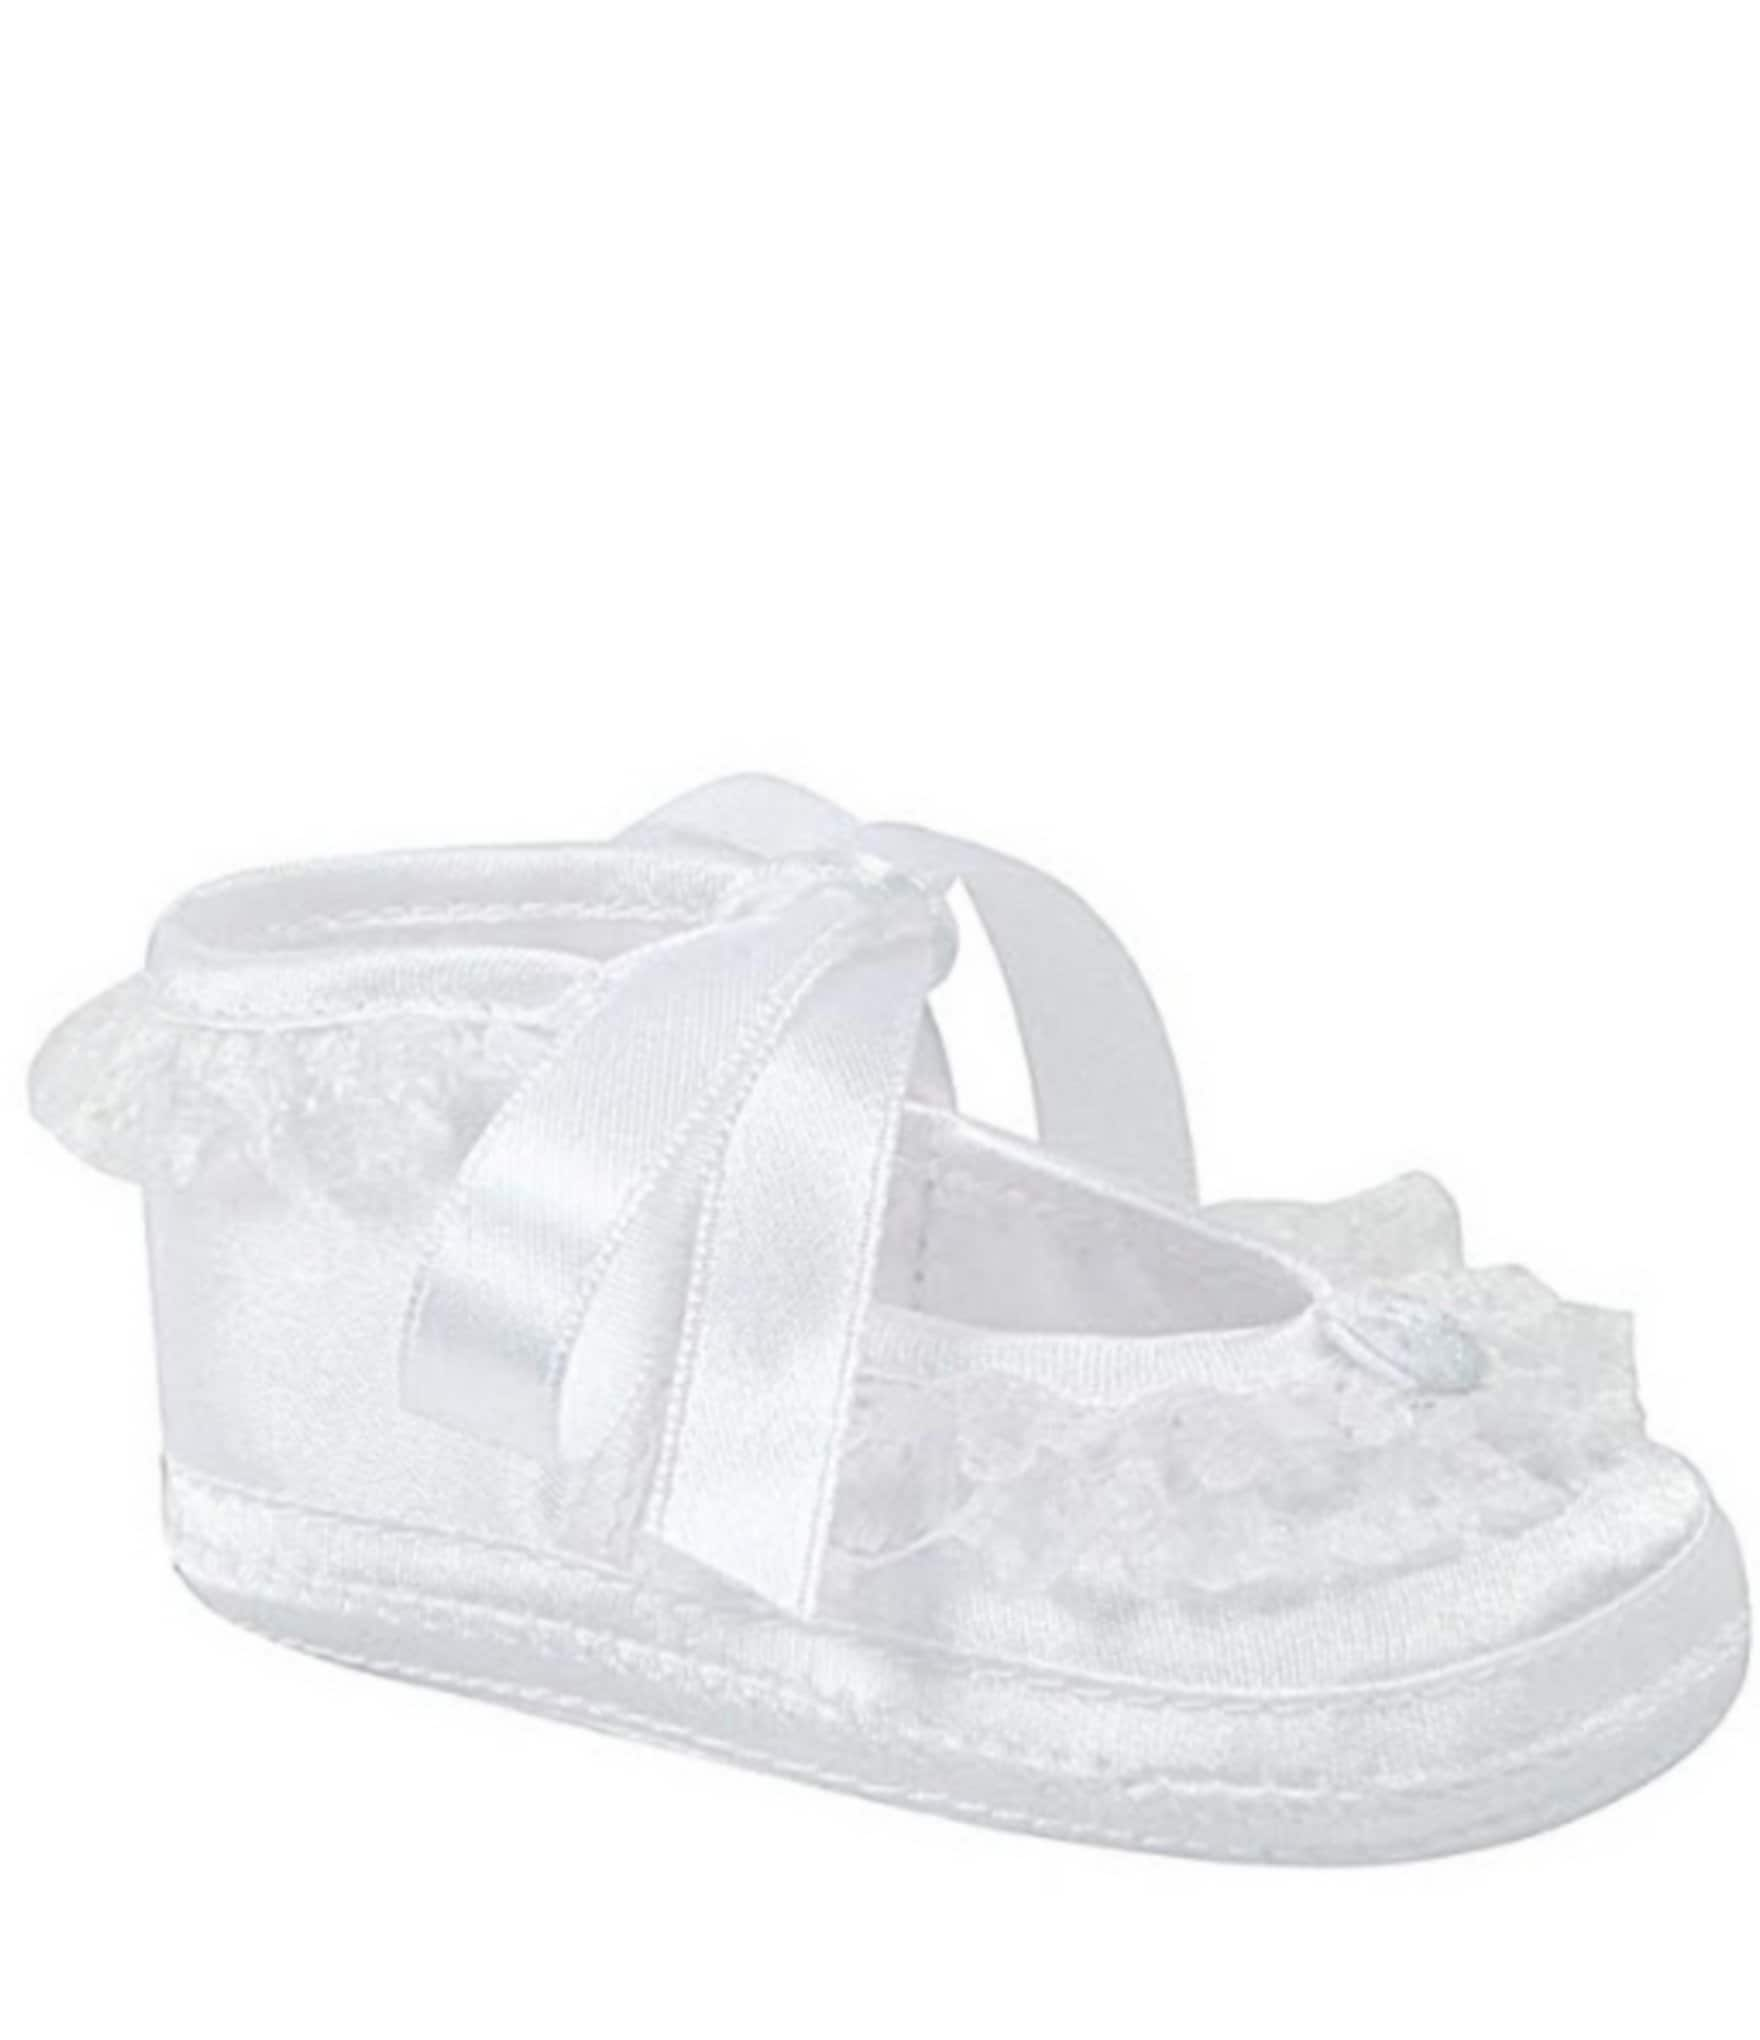 shoes infant: Baby Apparel, Accessories